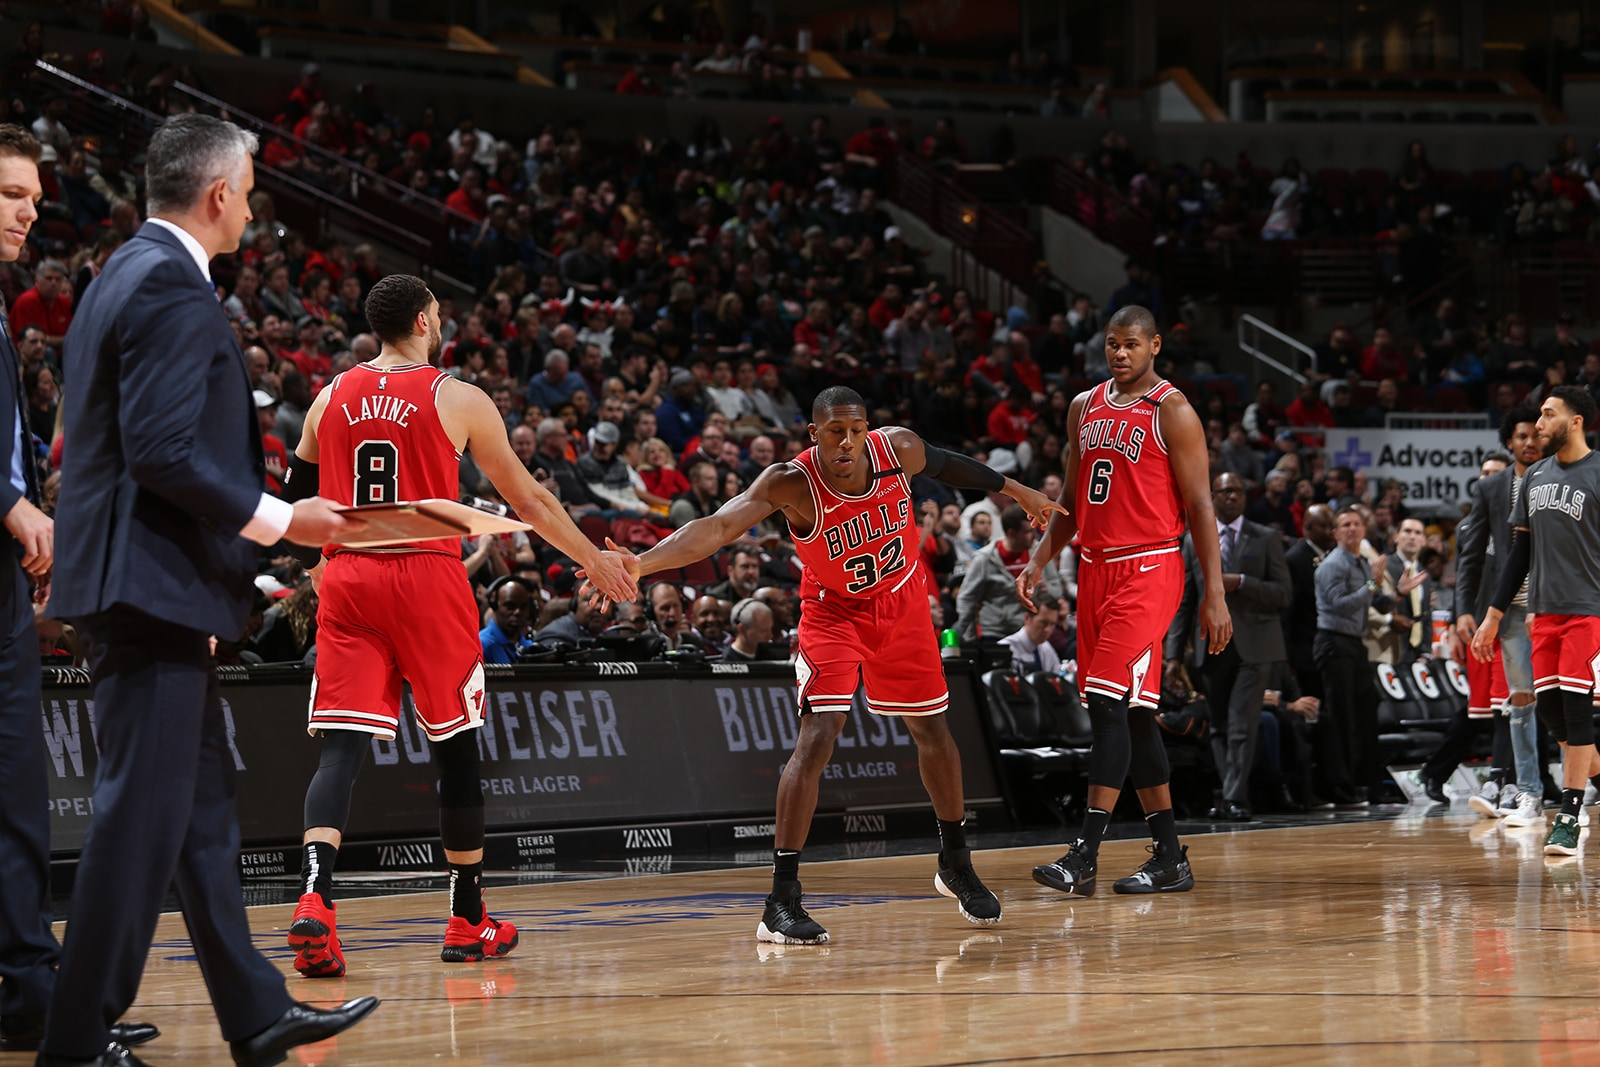 Dunn and LaVine high five